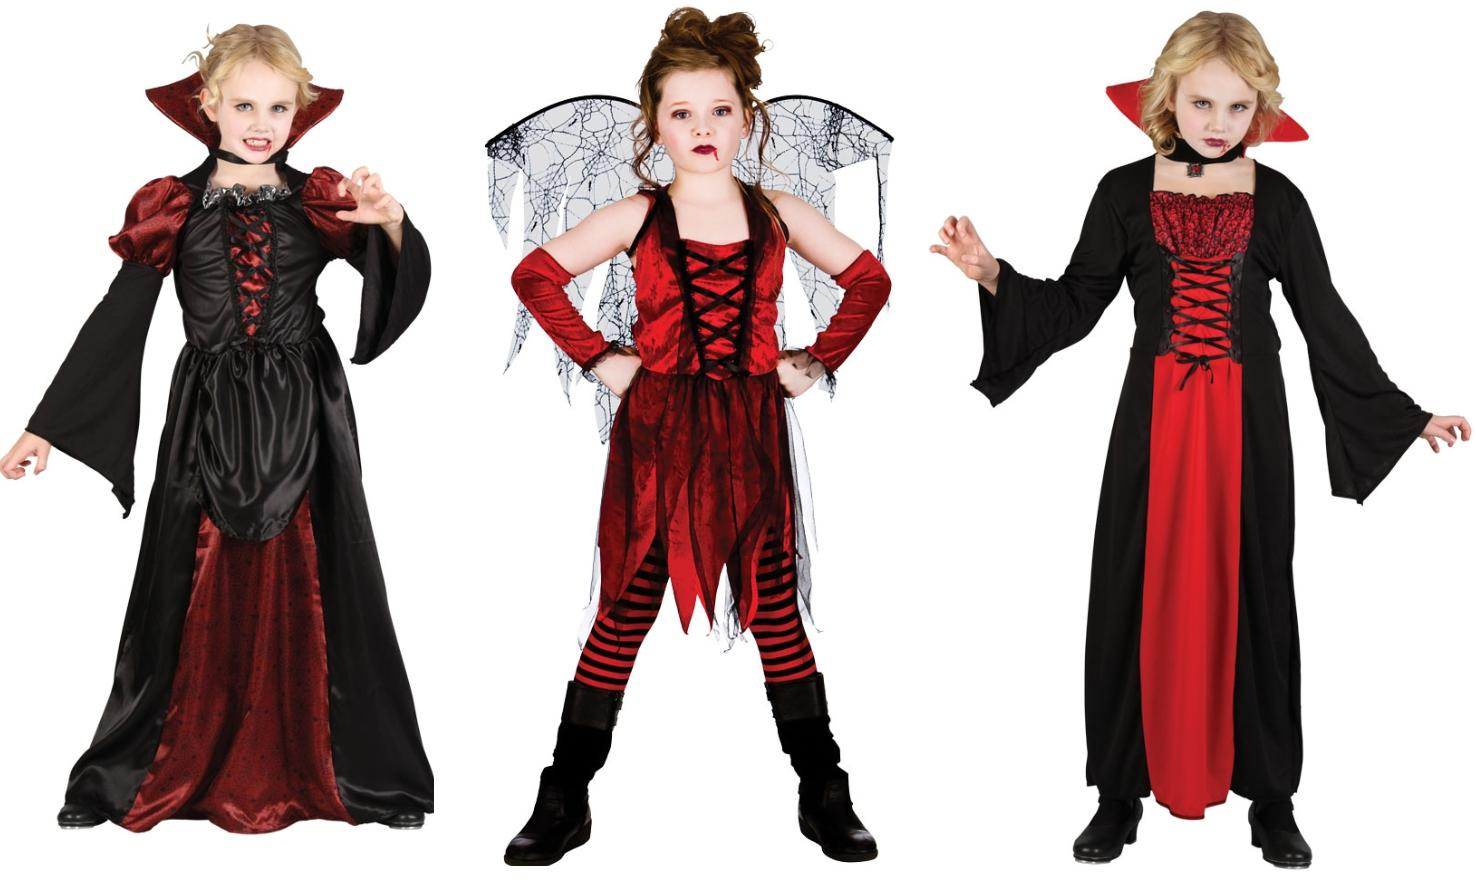 vampiress girls halloween fancy dress costume kids vampire scary outfit age 513 - 5 Girl Halloween Costumes